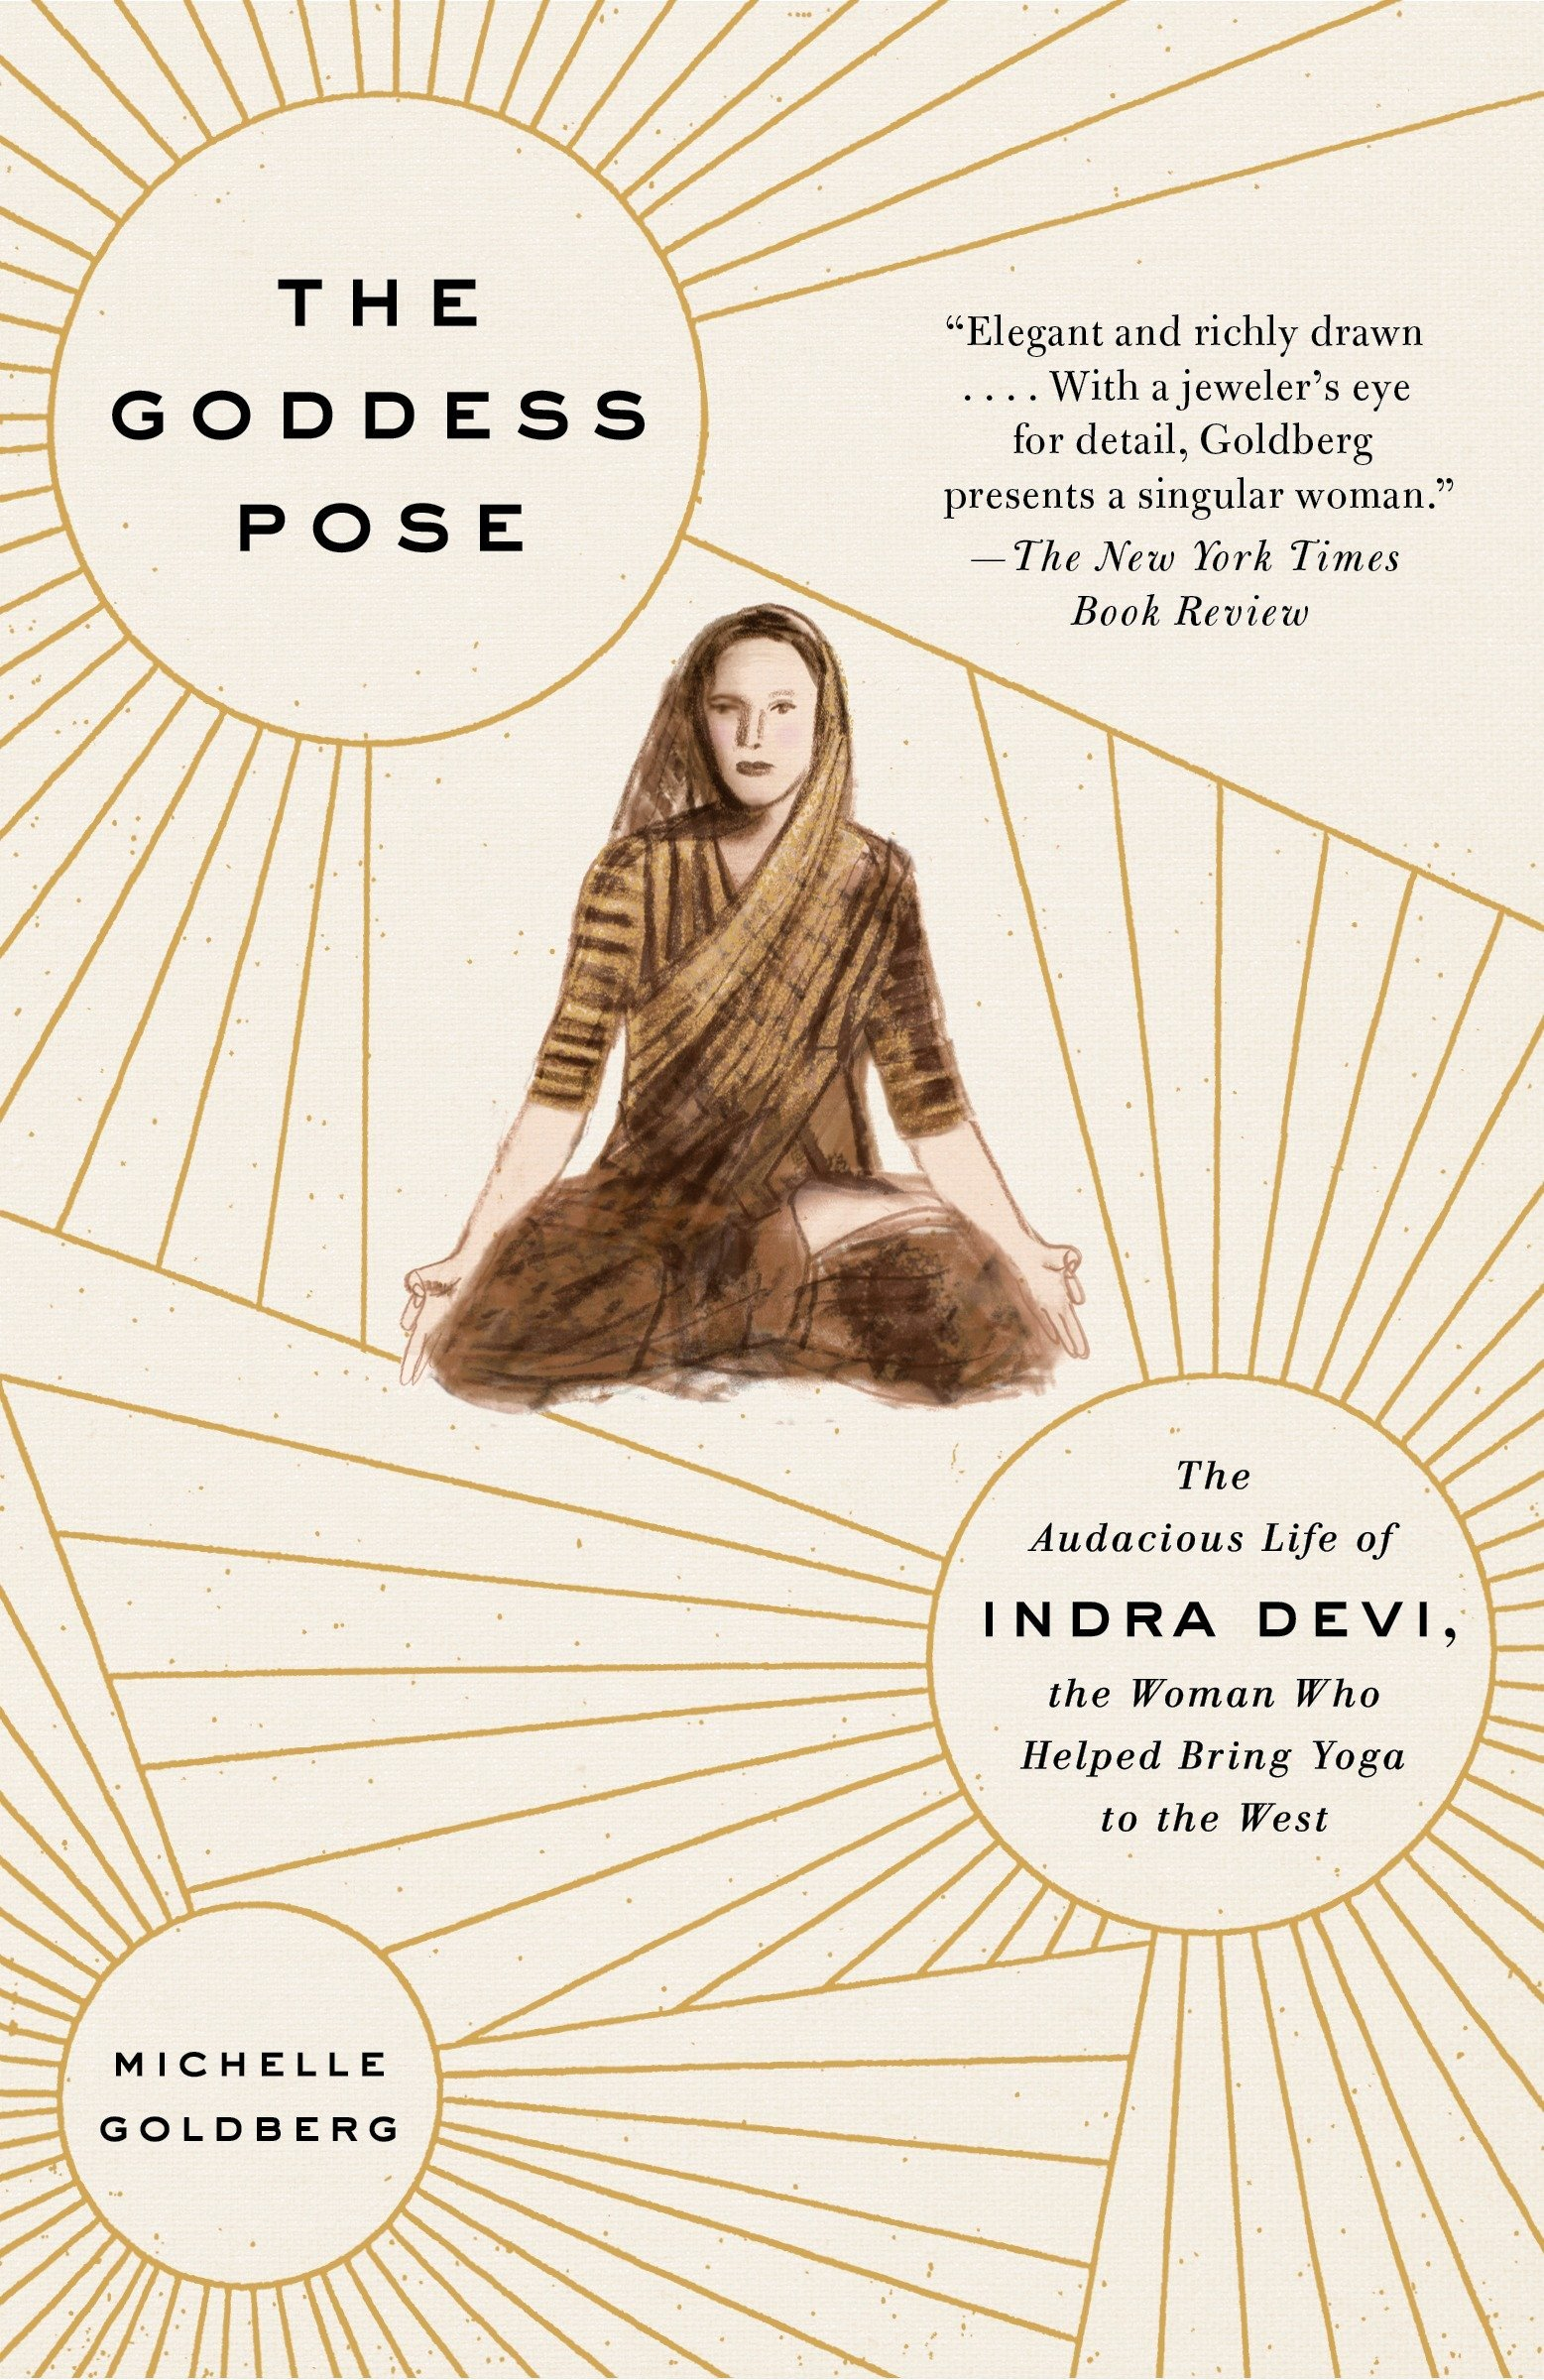 Amazon.com: The Goddess Pose: The Audacious Life of Indra Devi, the Woman  Who Helped Bring Yoga to the West (9780307477446): Michelle Goldberg: Books